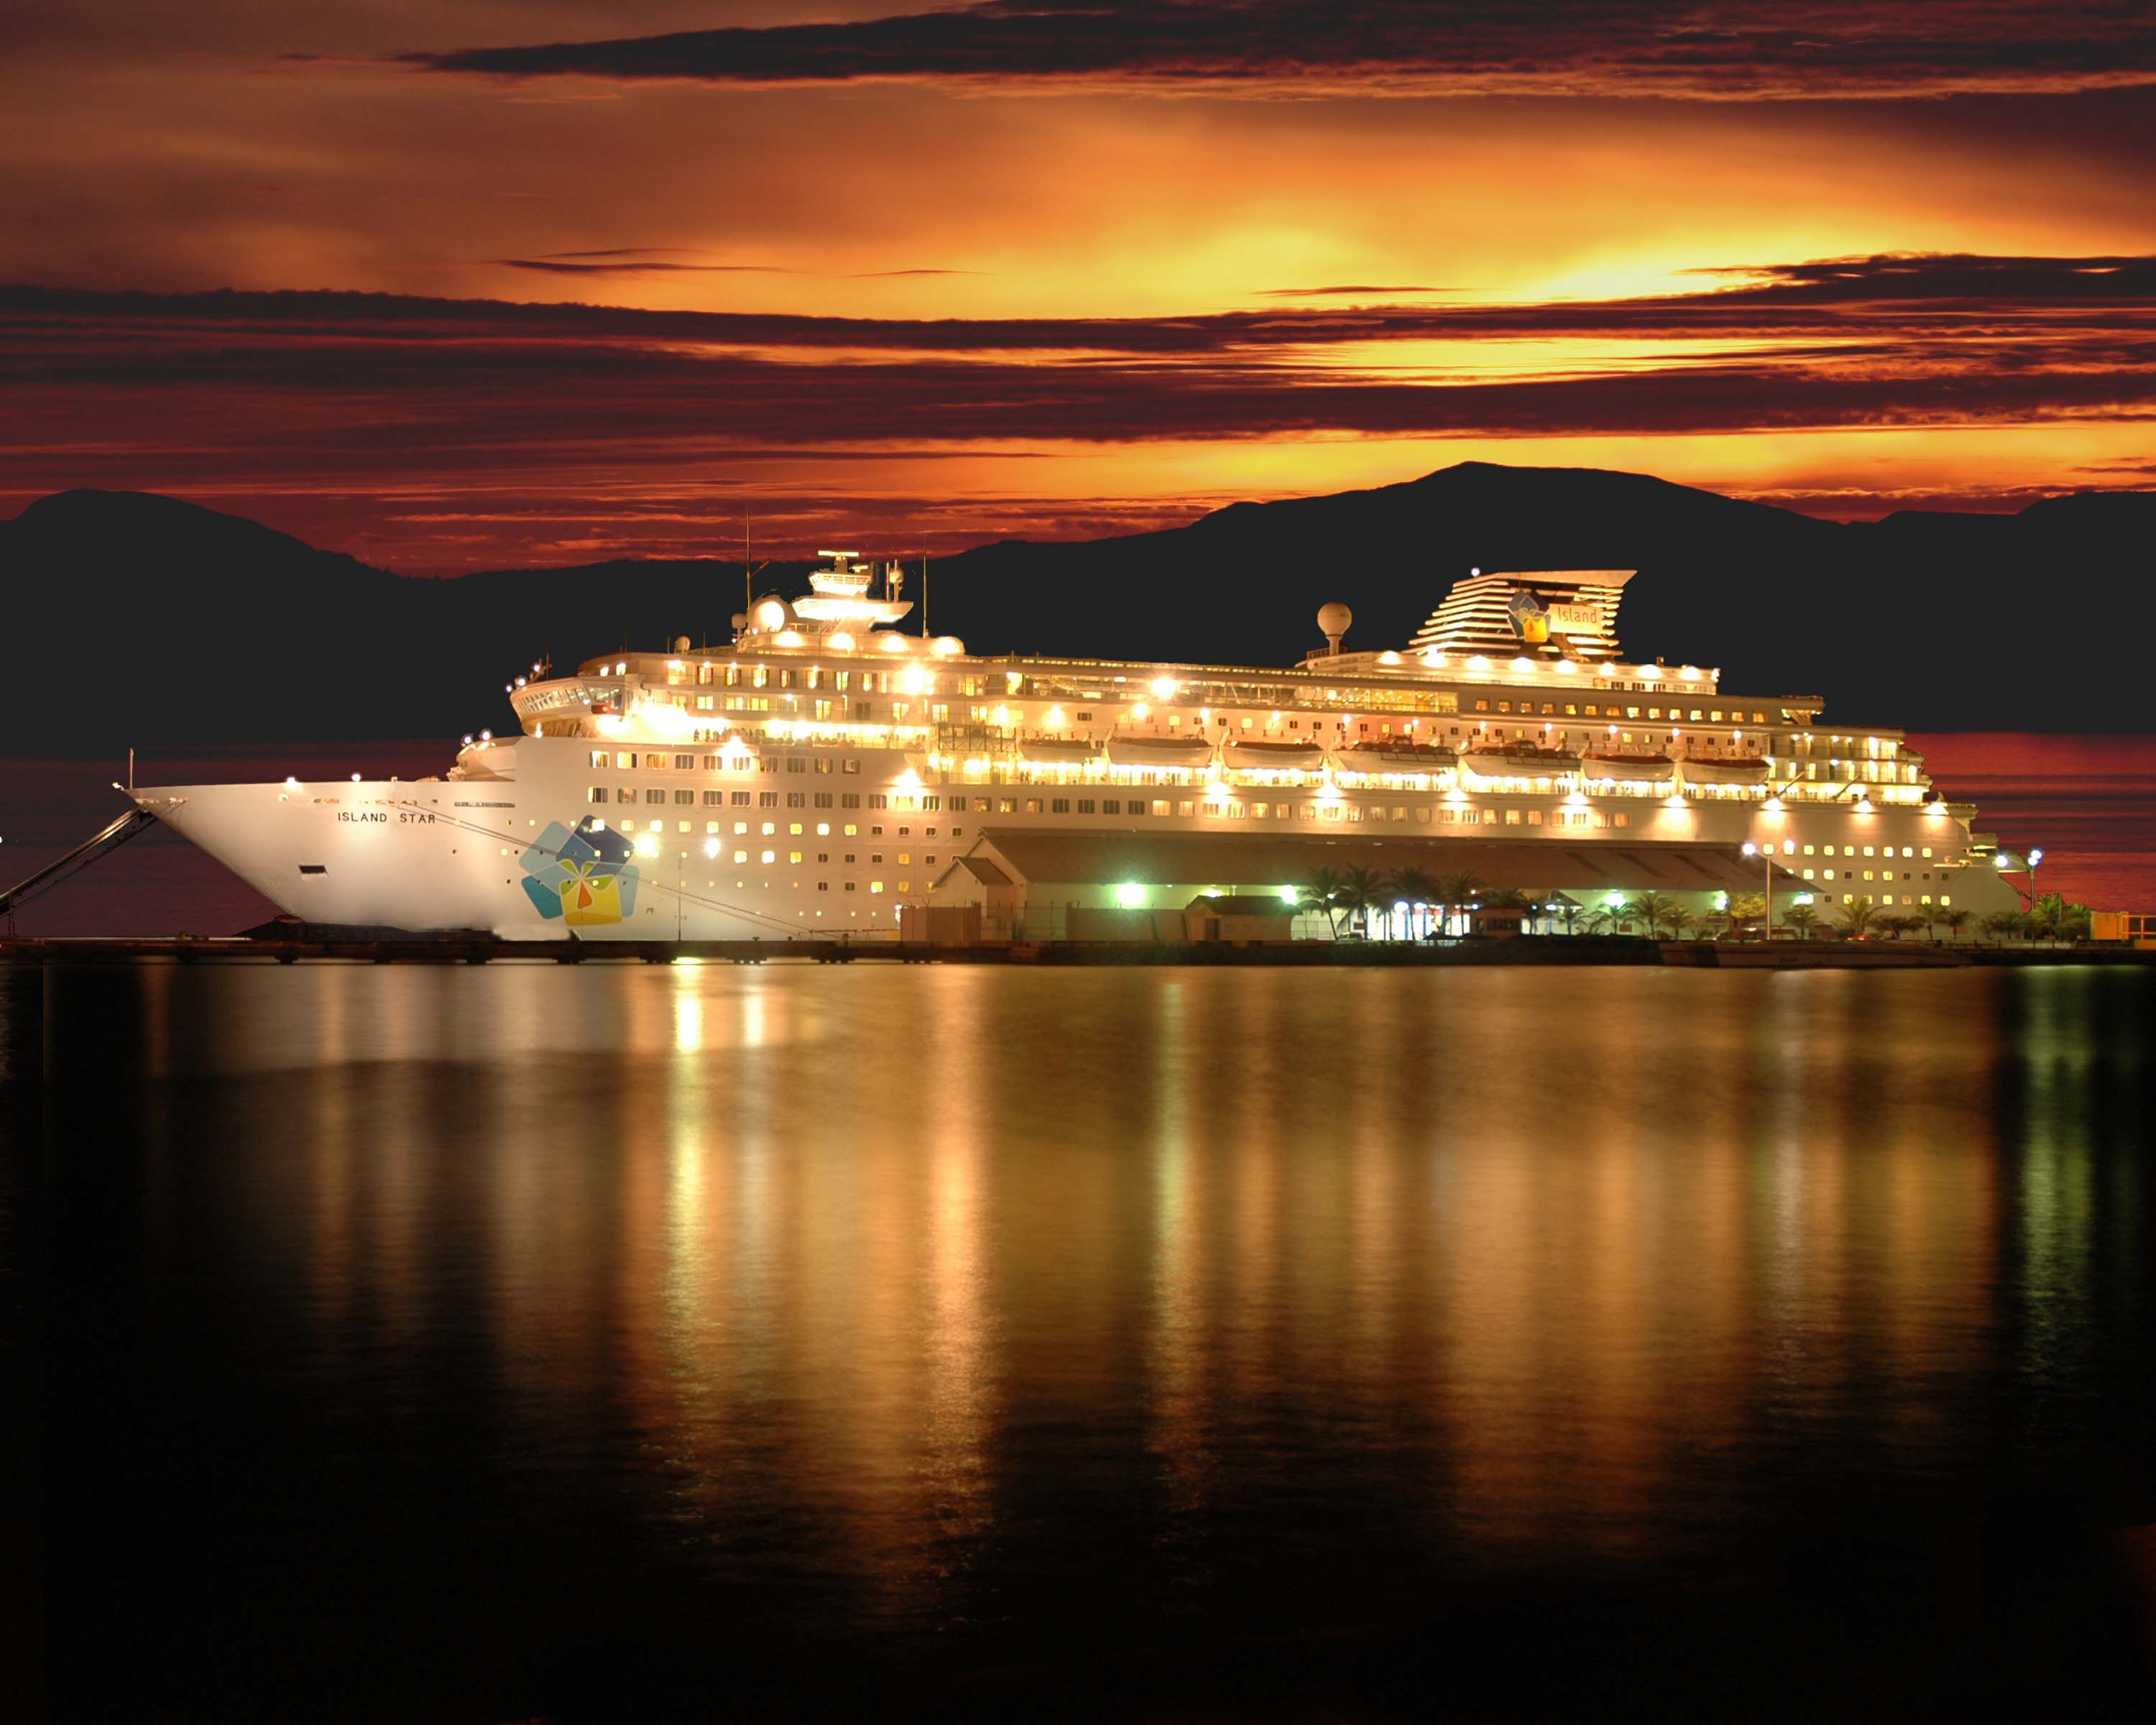 Cruise Ship Docked at Night Port 210.94 Kb